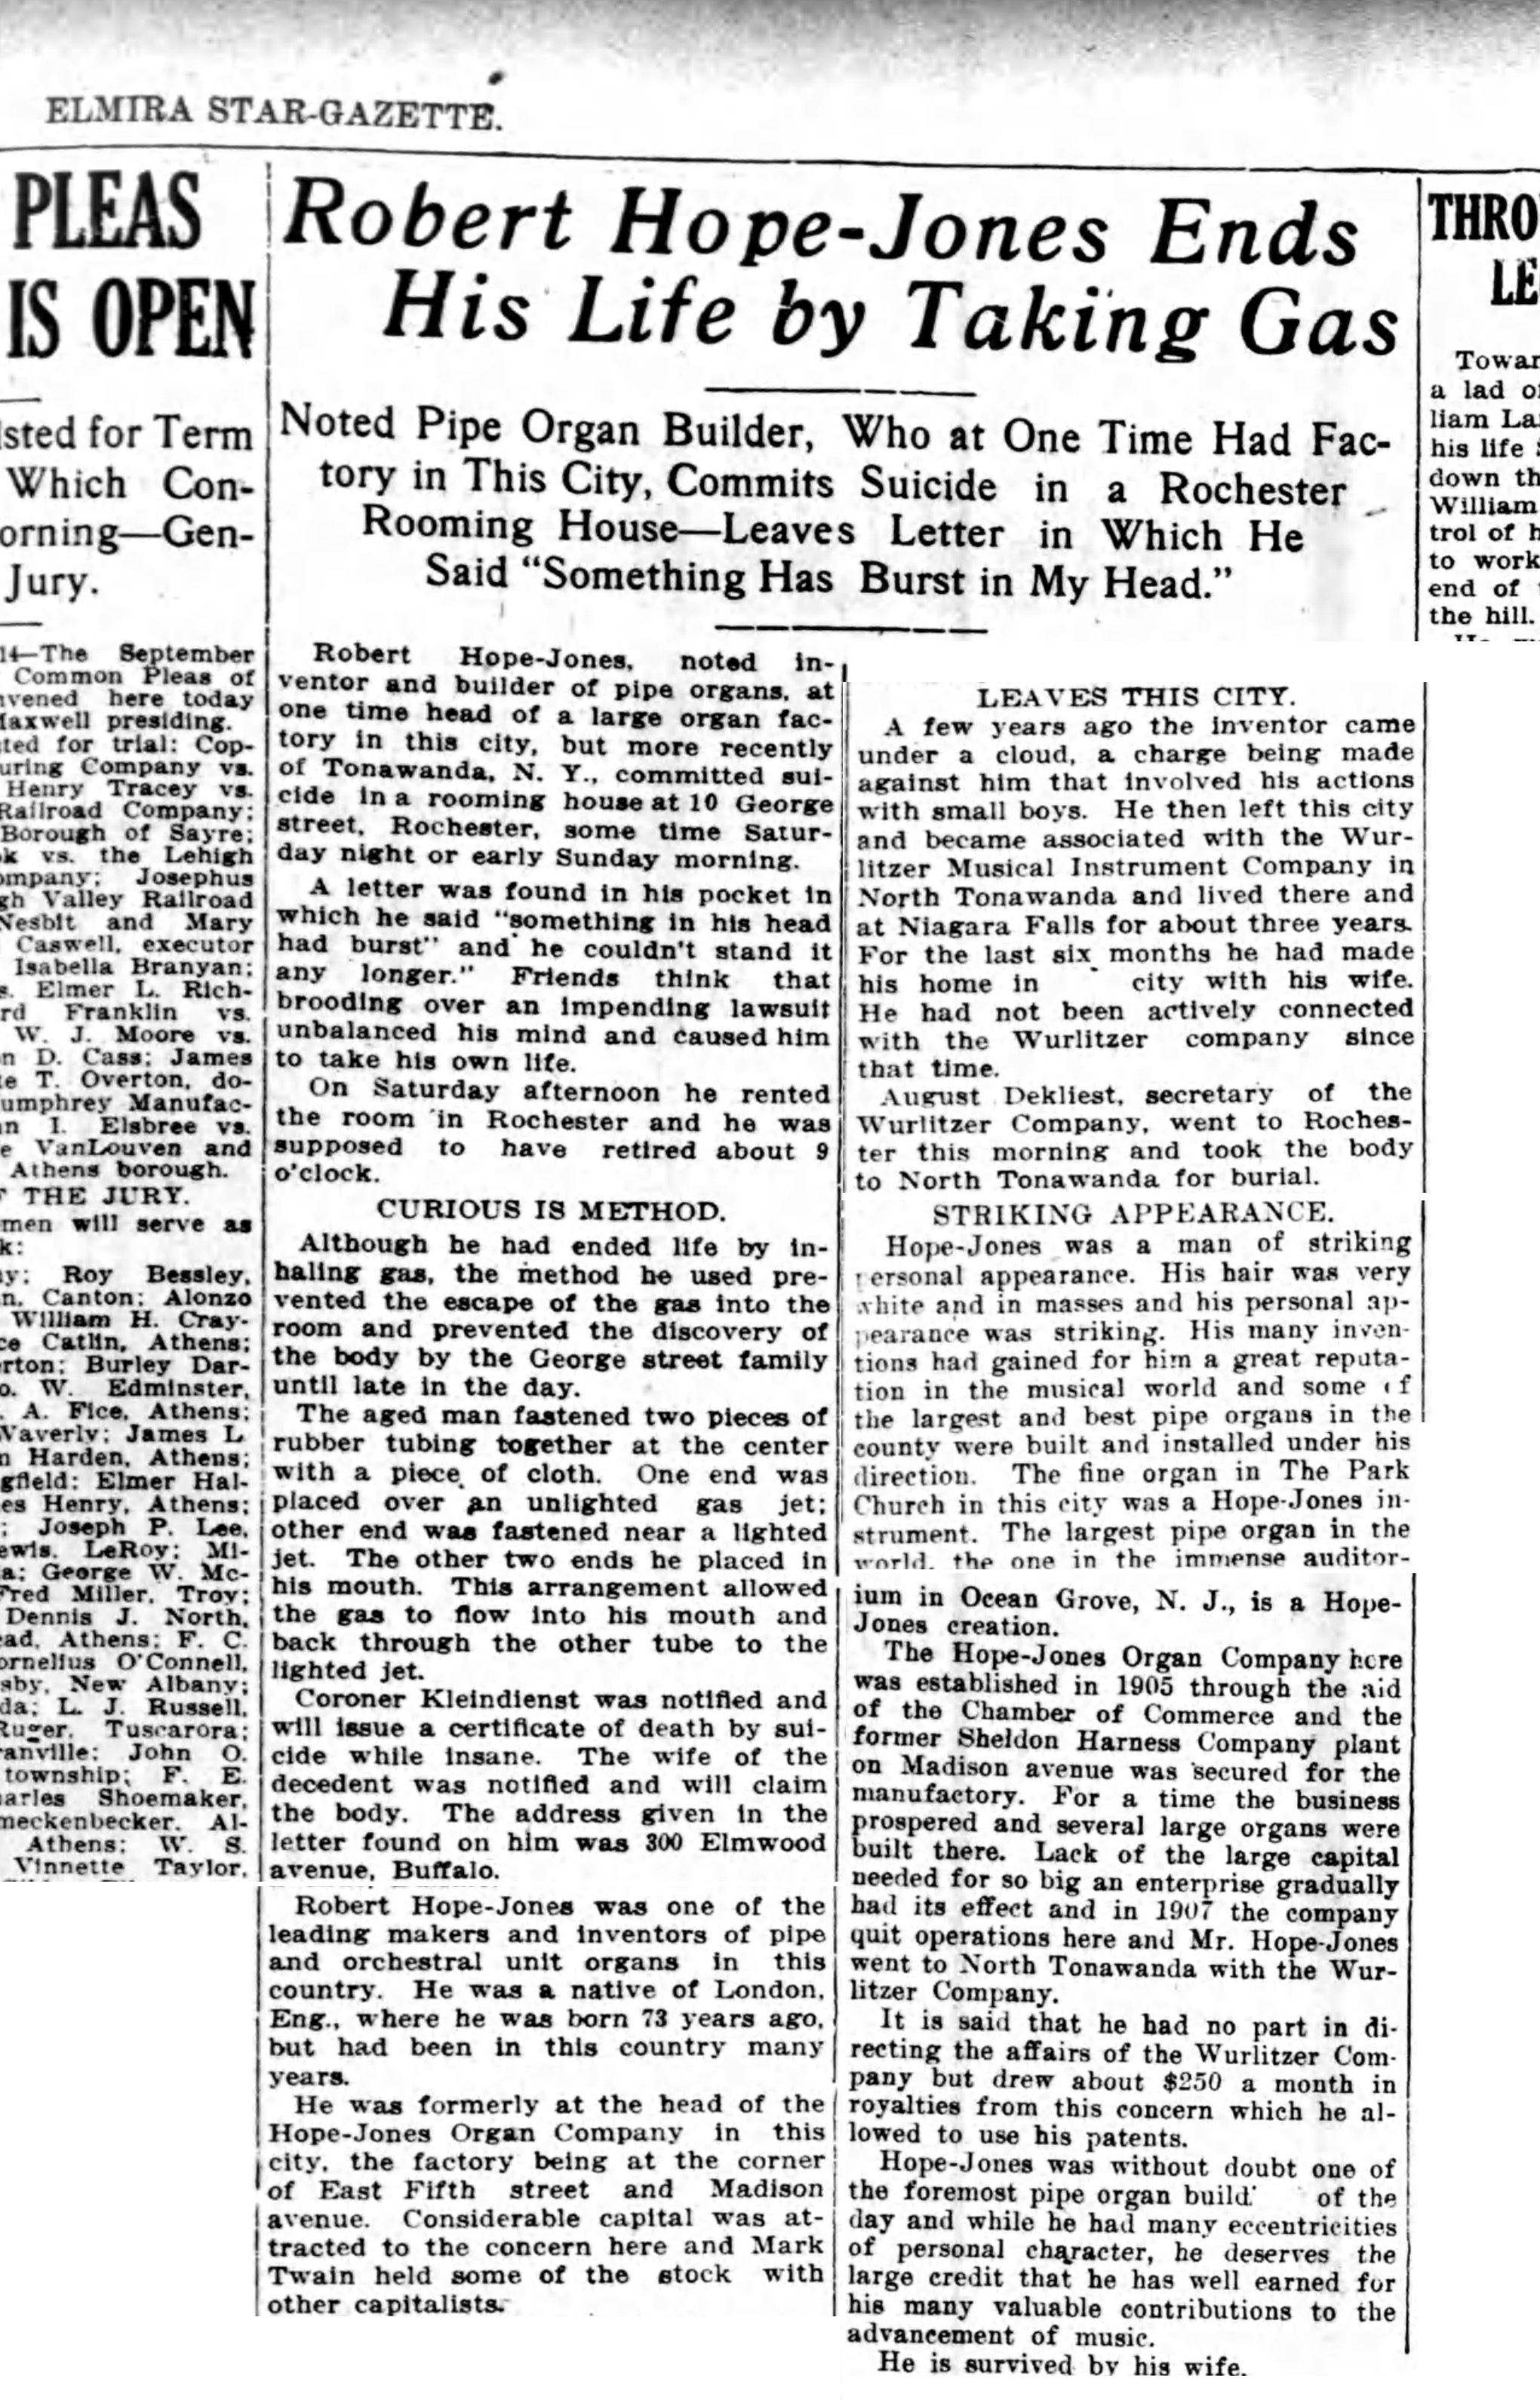 Robert Hope-Jones ends his life by taking gas, article (Elmira Star-Gazette, 1914-09-14).jpg